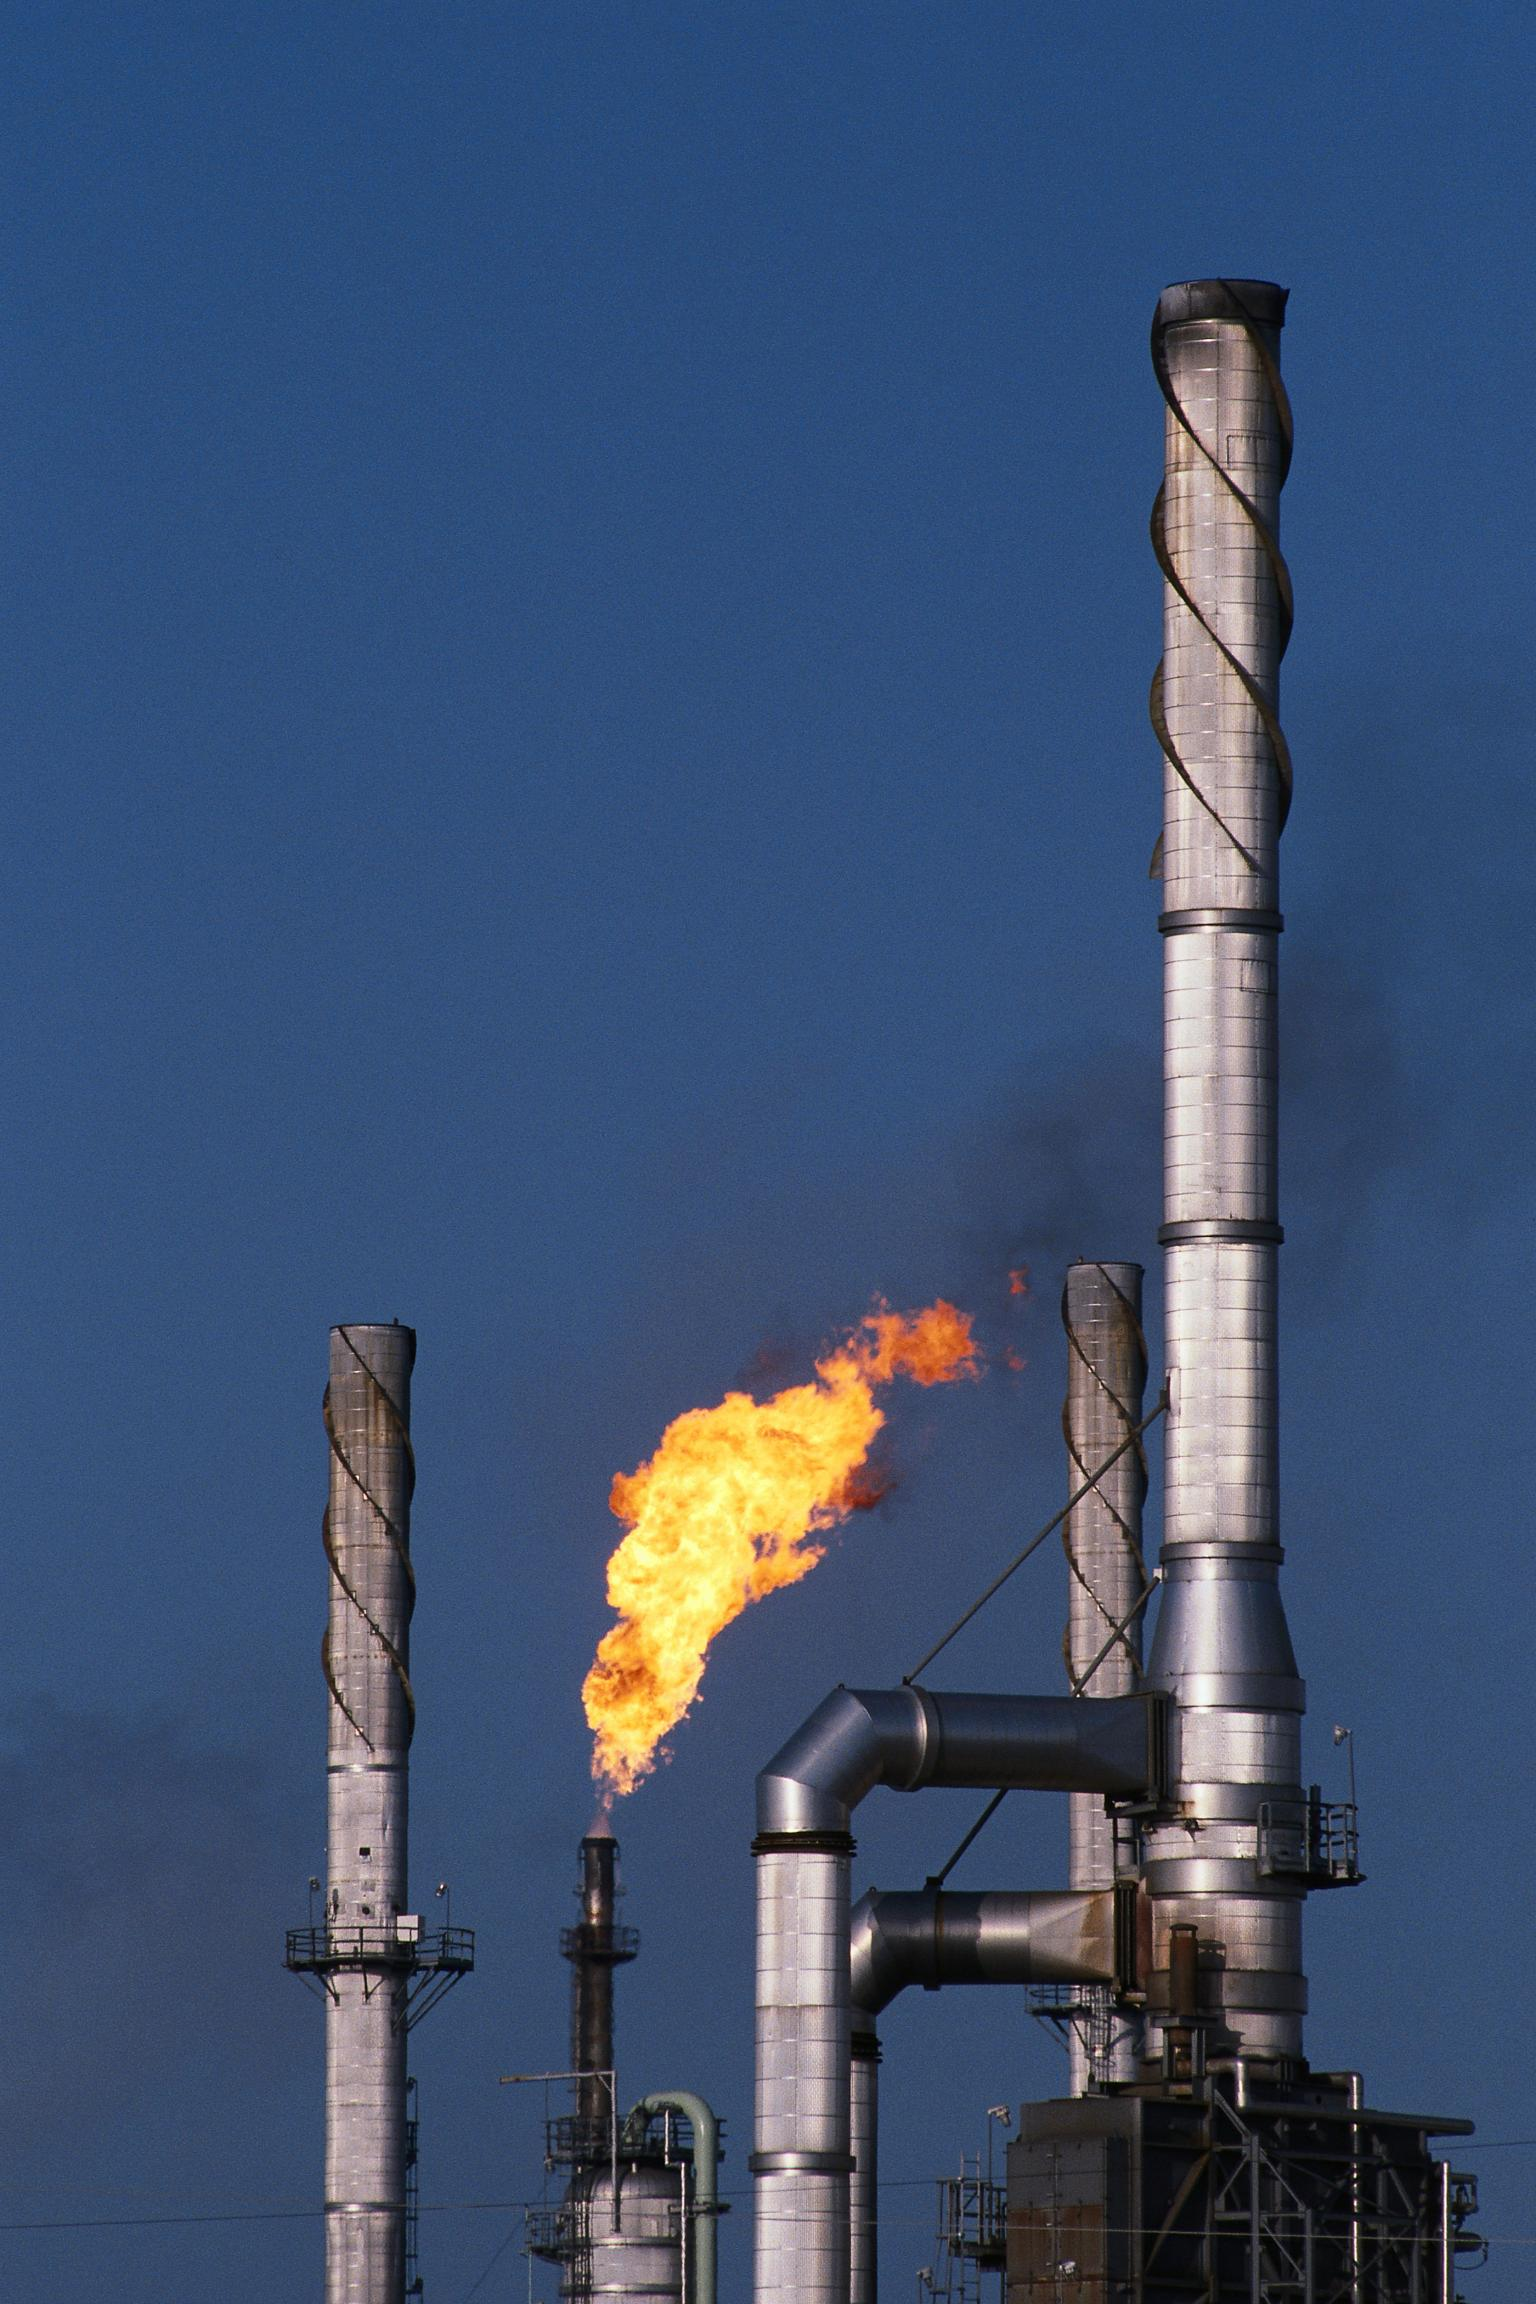 In November 2015, compliance with the regulations for refinery flares will become mandatory